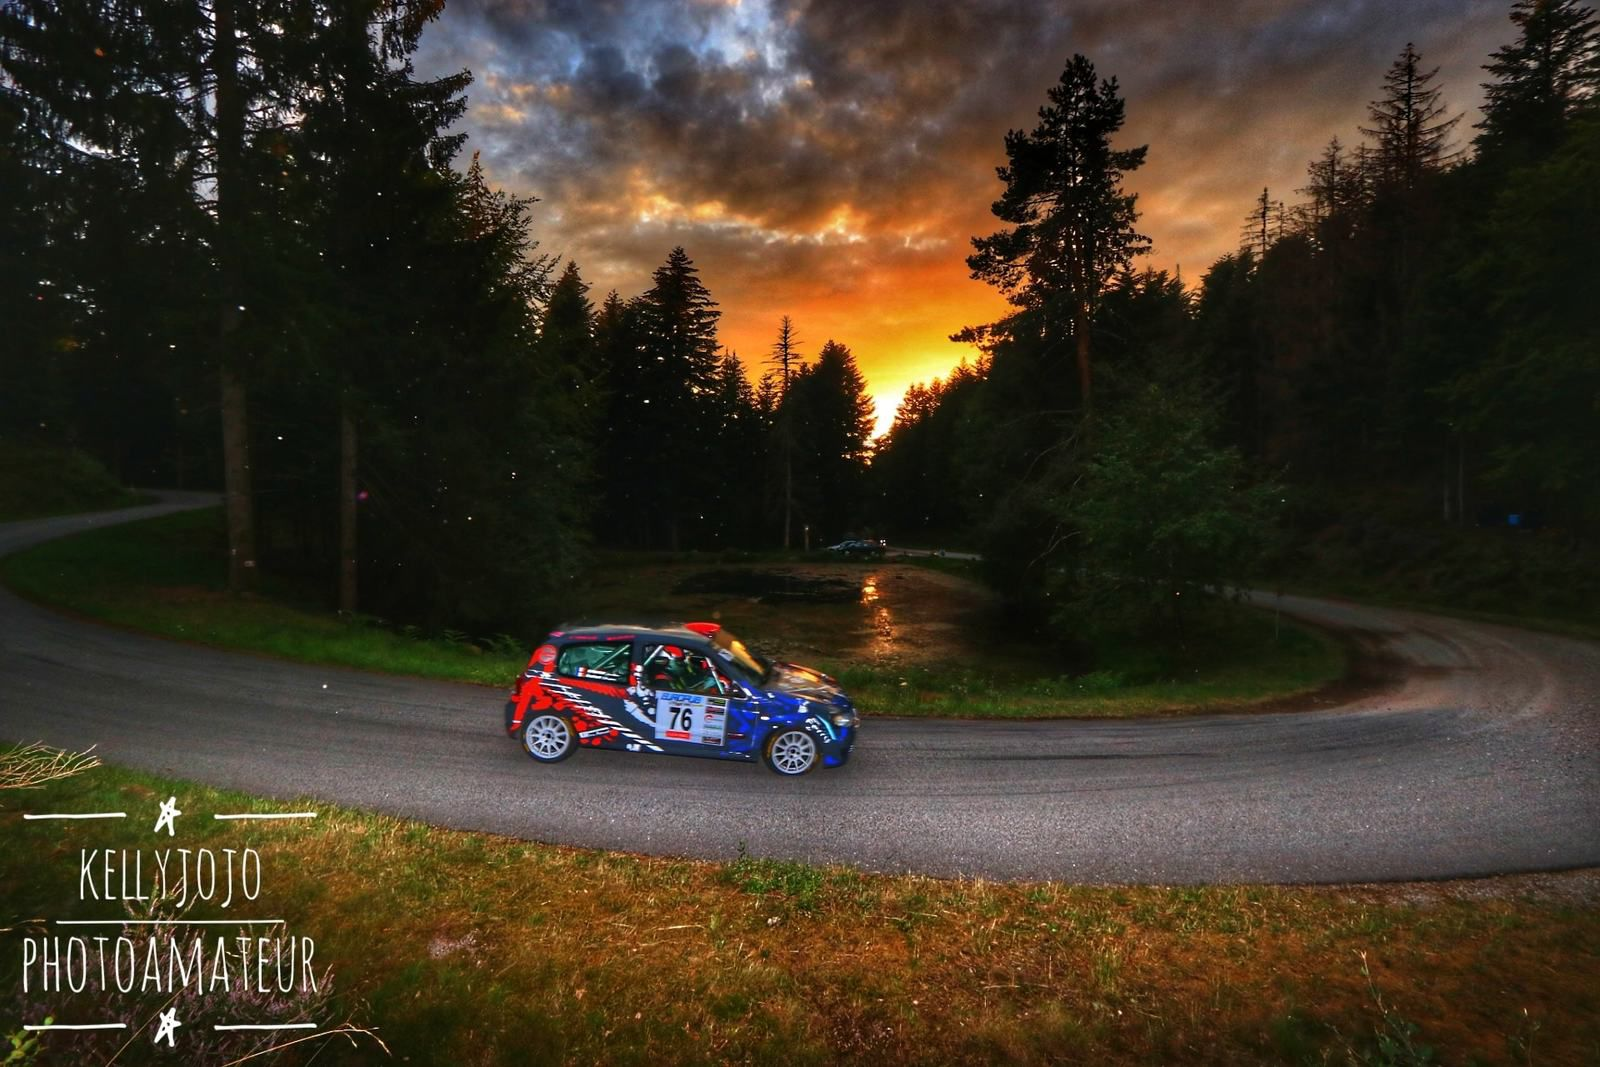 Calendrier Rallye Grand Est 2021 Calendrier des rallyes 2021 ligue Grand Est | Motors Addict